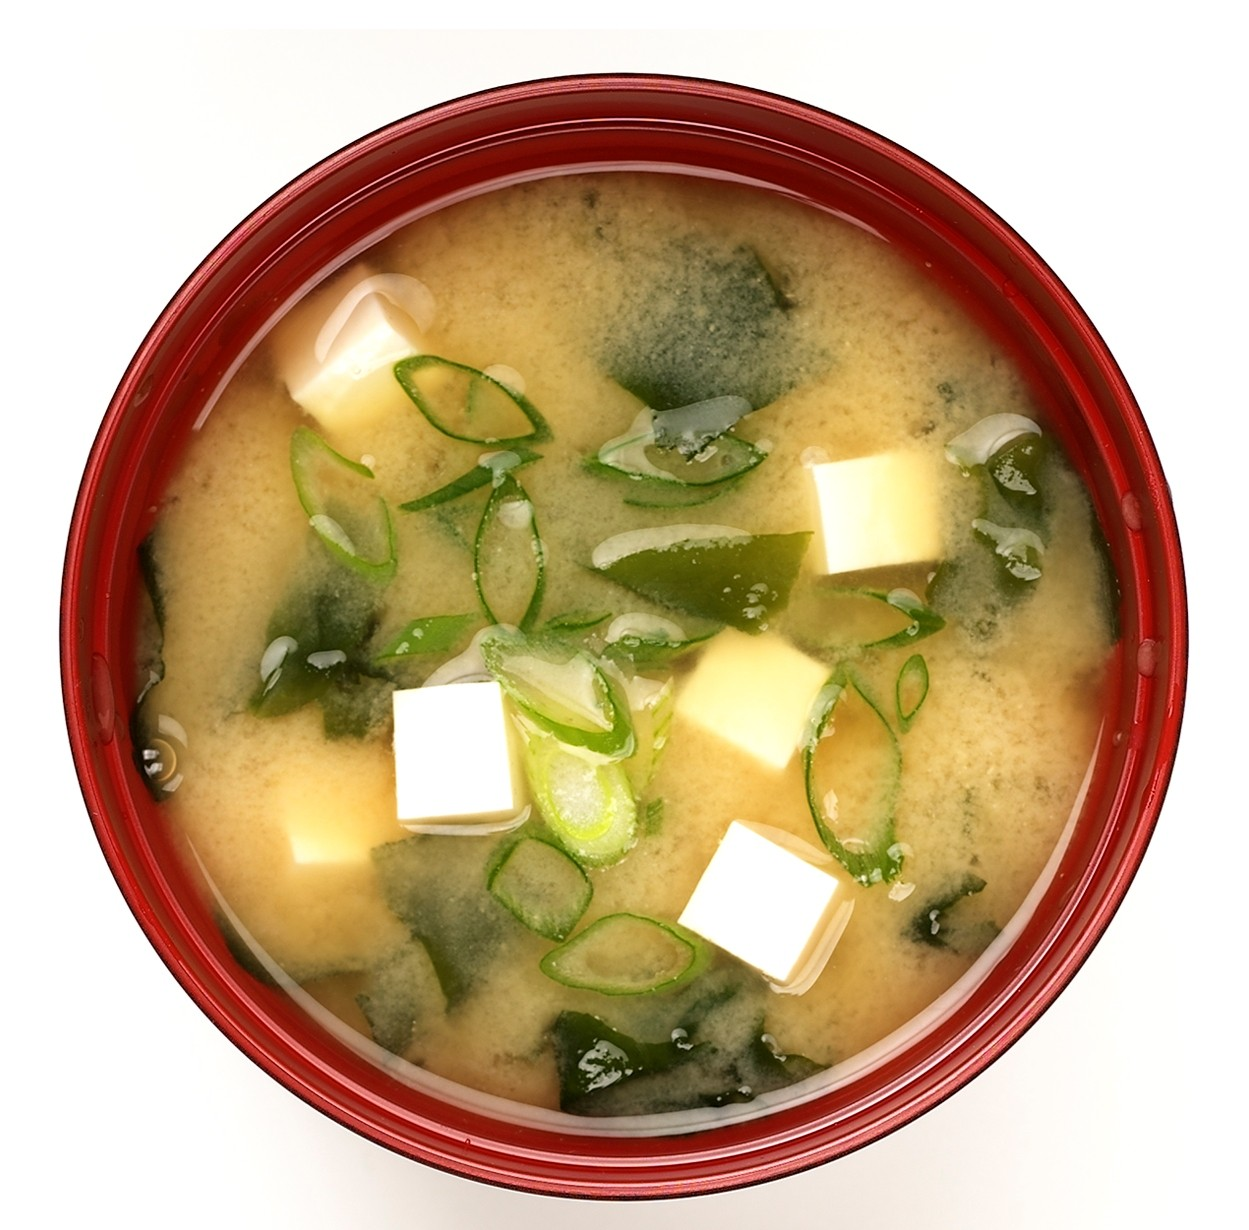 Recipe For Miso Soup I - Glorious Soup Recipes